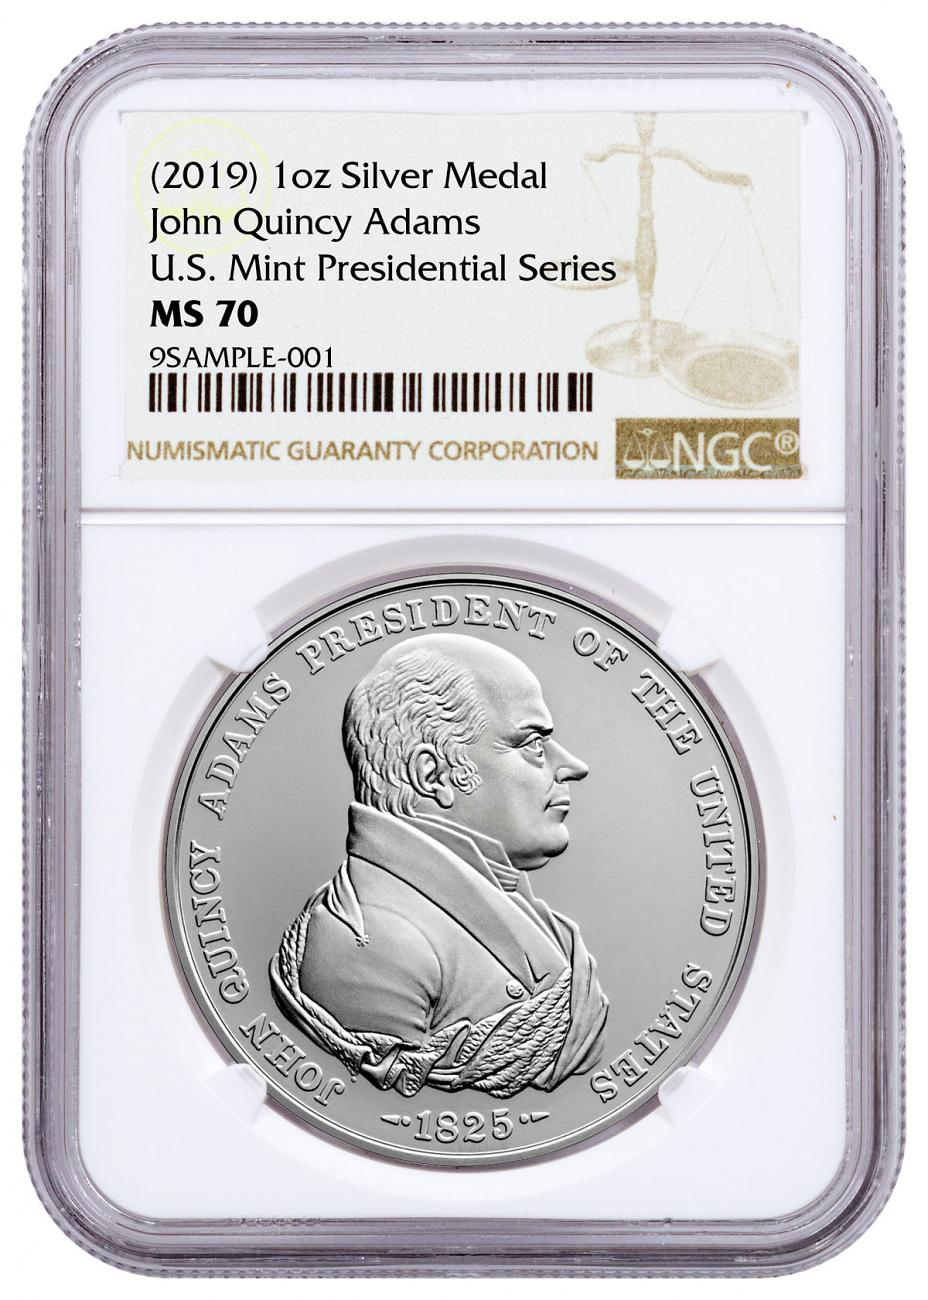 (2019) United States John Quincy Adams Presidential 1 oz Silver Medal NGC MS70